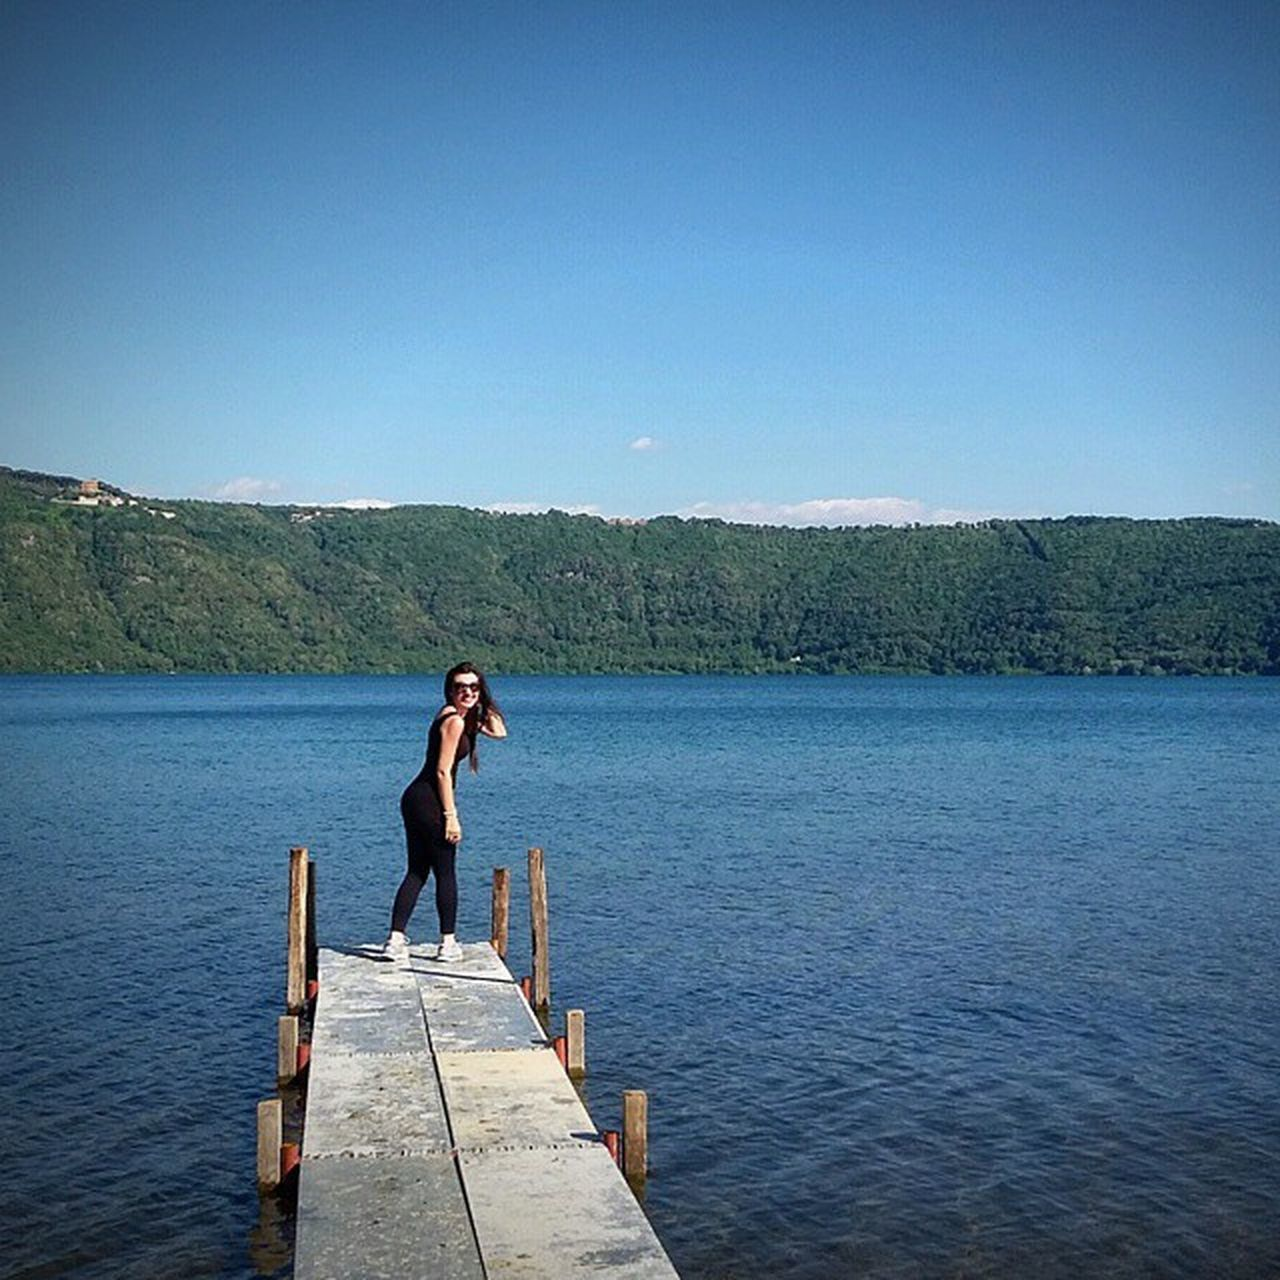 Apparently, I loved this little dock! Me ThatsMe Lake Albano Lago Di Albano Roma Rome Love Beautiful Nature Mountains Mountain Photography Fun Happy Summer Dock Living In Rome Town My Best Photo 2015